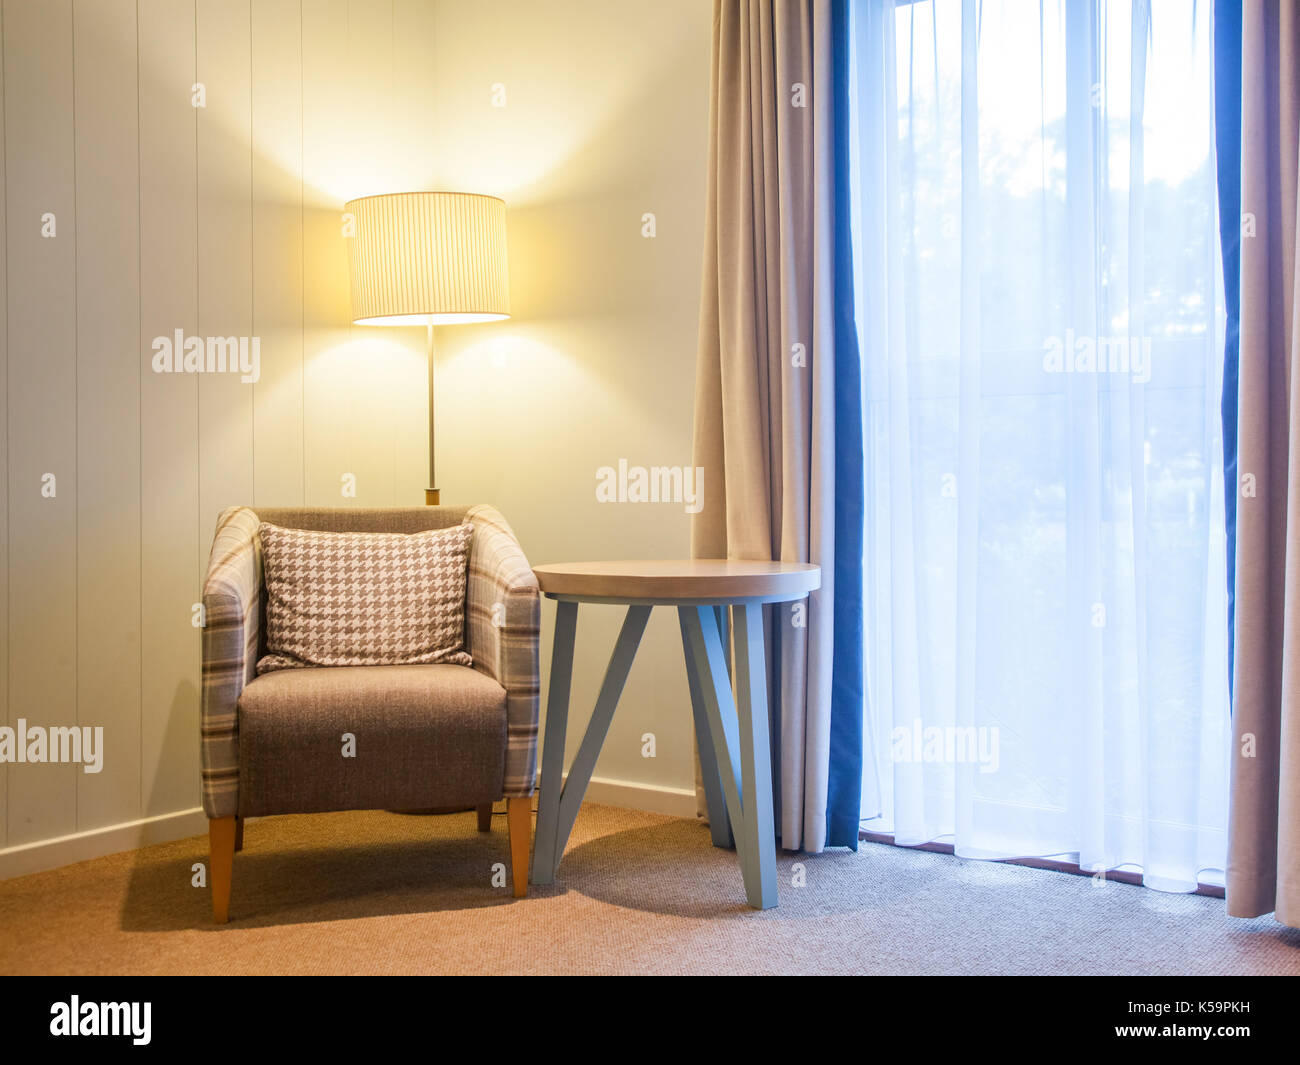 Chairs For Reading Corner Chair And Lamp By The Window Cozy Reading Corner Stock Photo